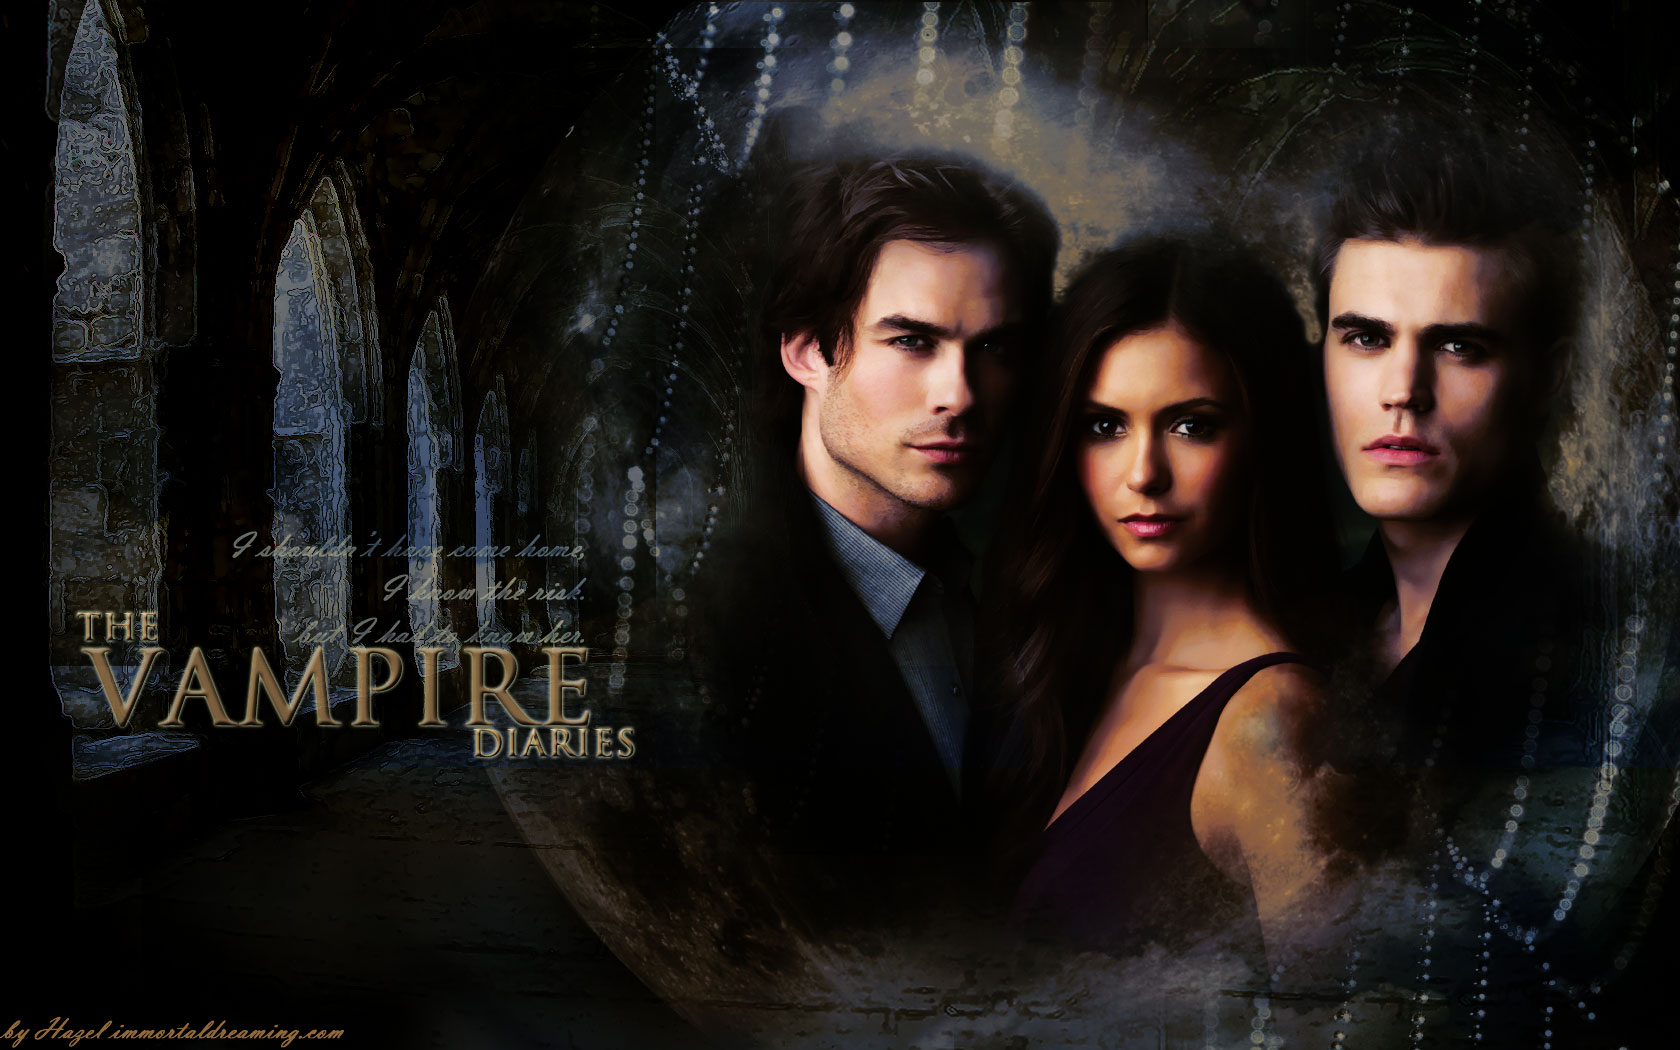 Wallpaper The Vampire Diaries: Nina Dobrev , Paul Wesley And Ian Somerhalder